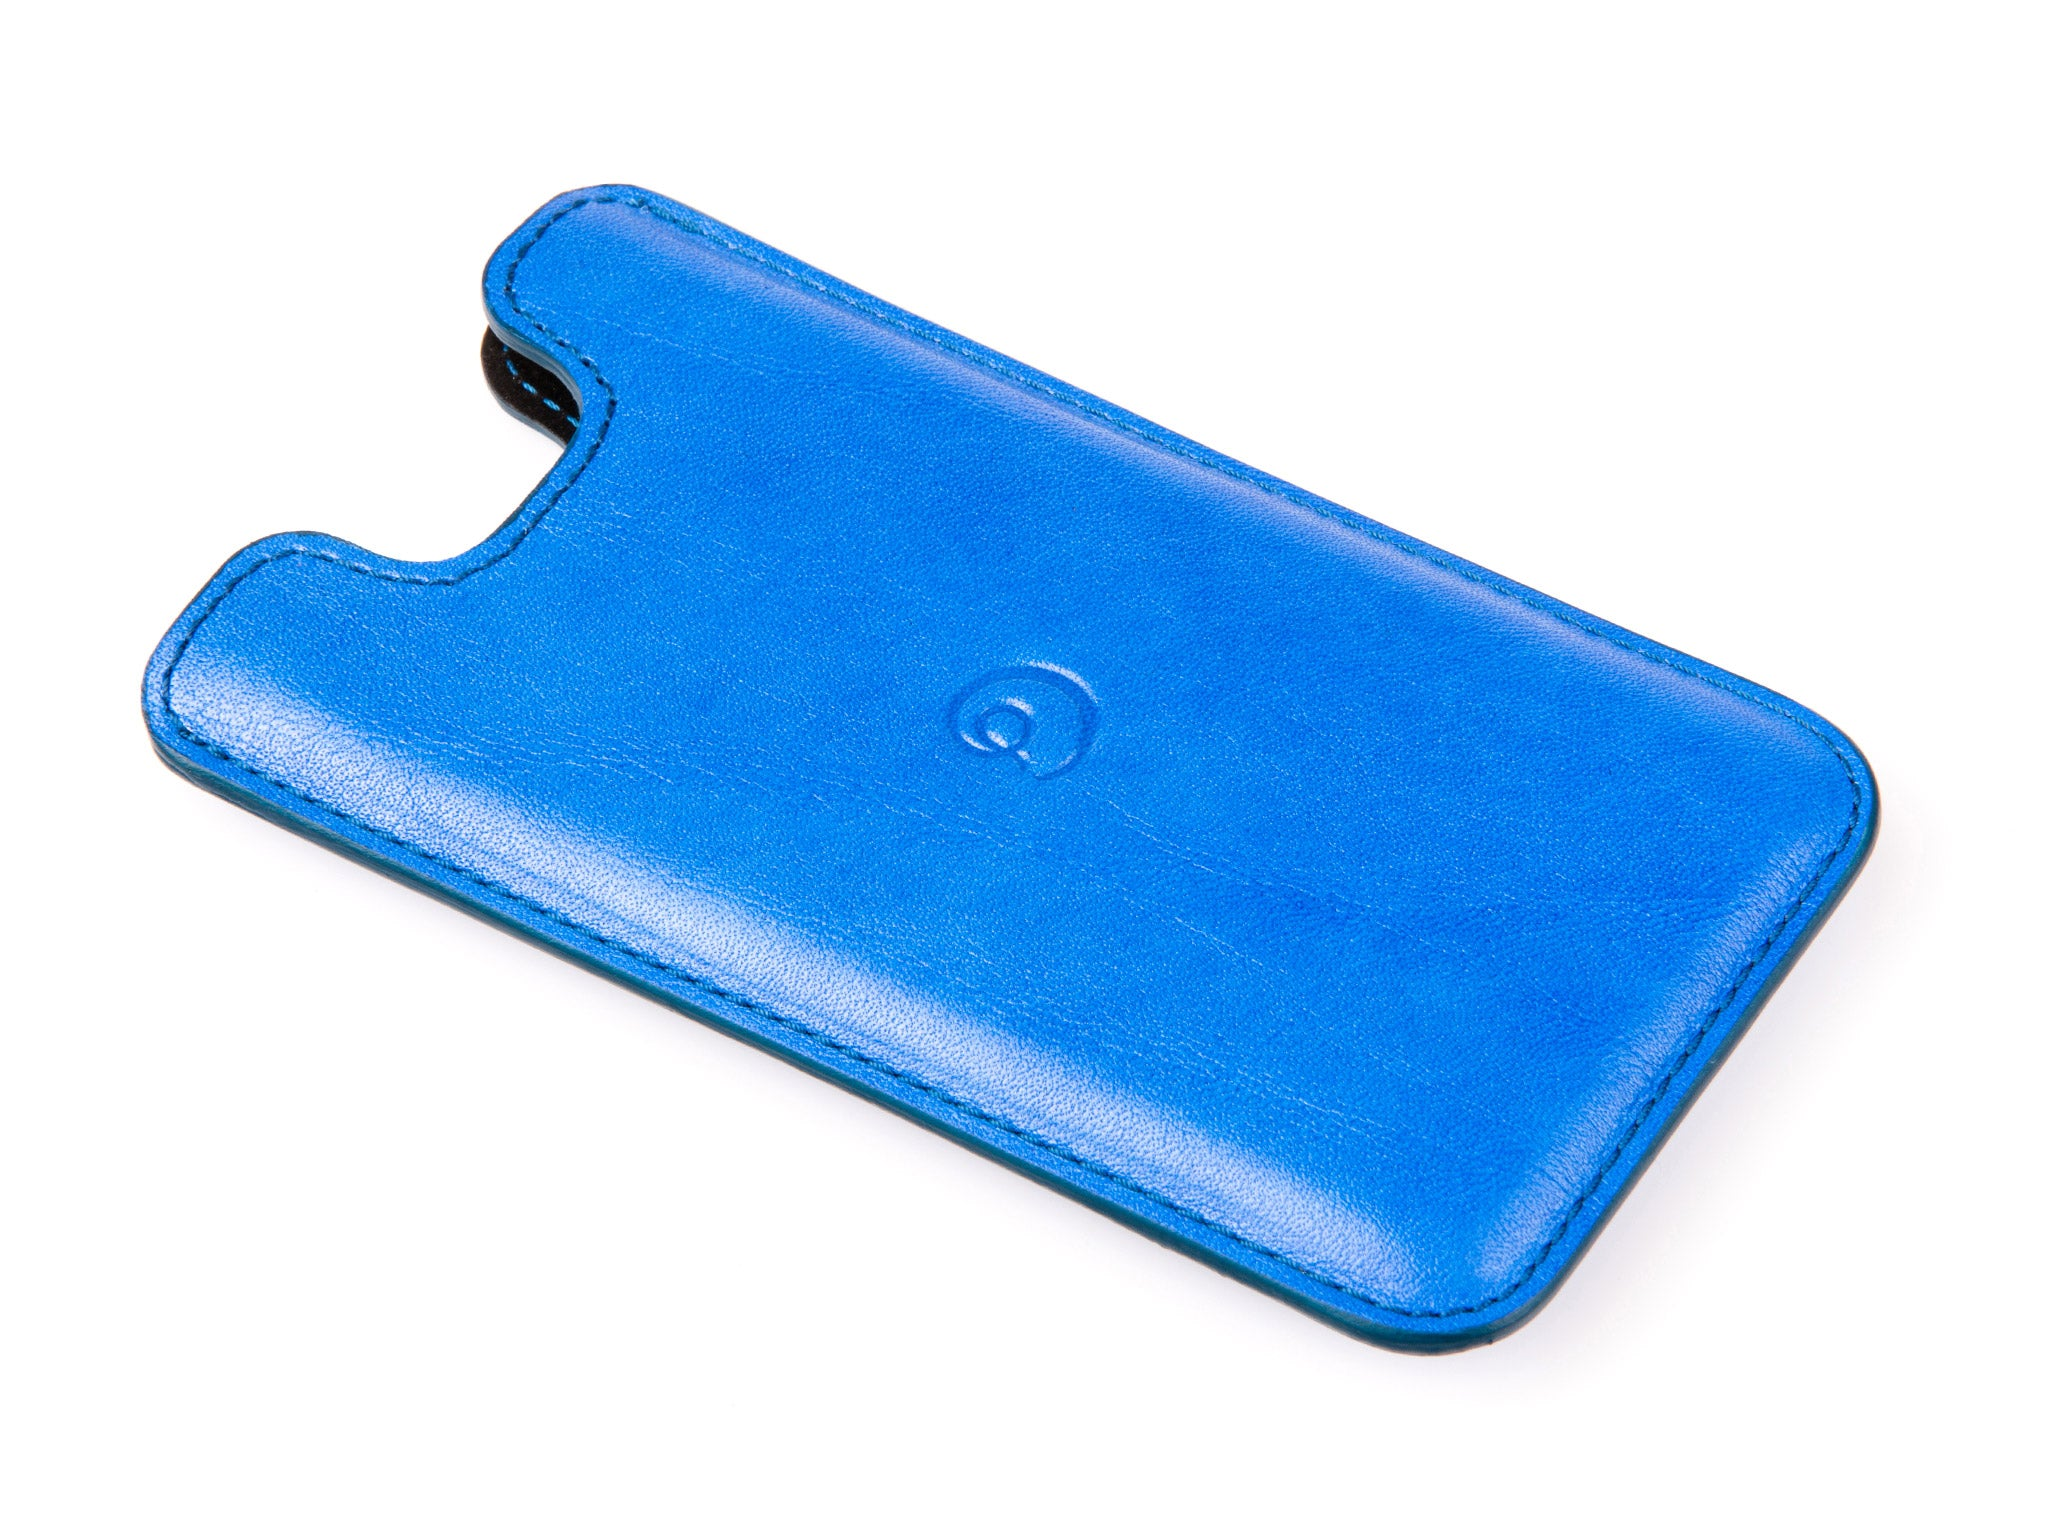 Leather iPhone 6/6s/7/8 Plus case ocean blue by Danny P.